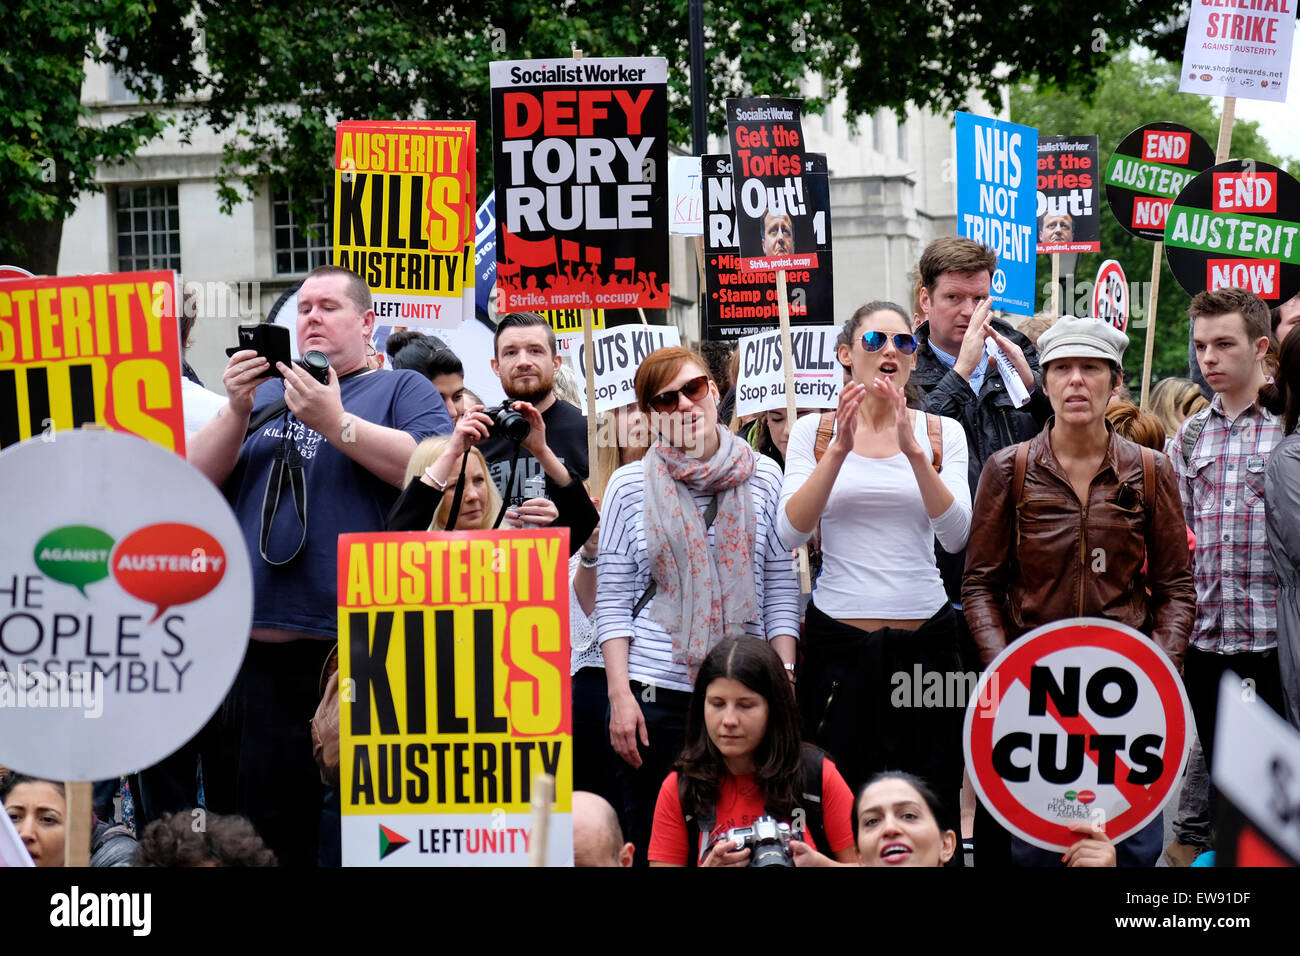 Anti-austerity protesters outside Downing Street, London - Stock Image